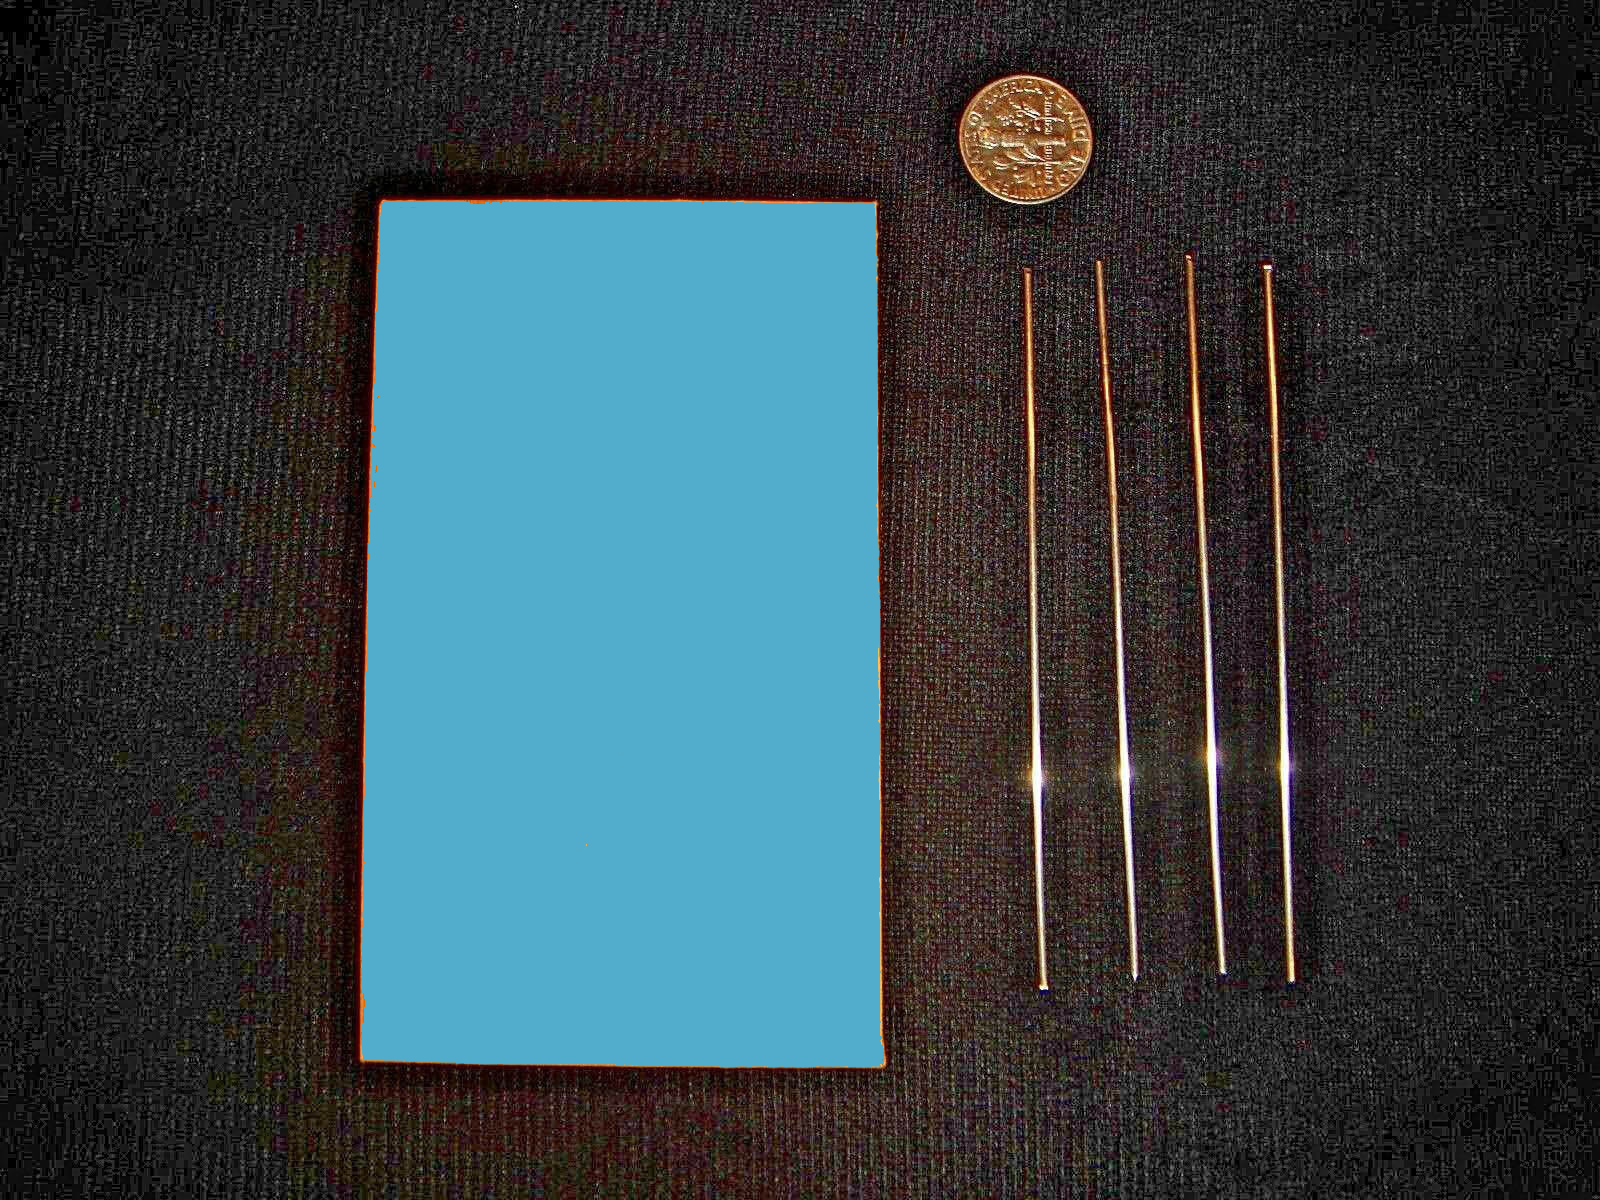 .9999 Silver Electrodes Colloidal Silver Generators (4) Rods Energy Health Water 3